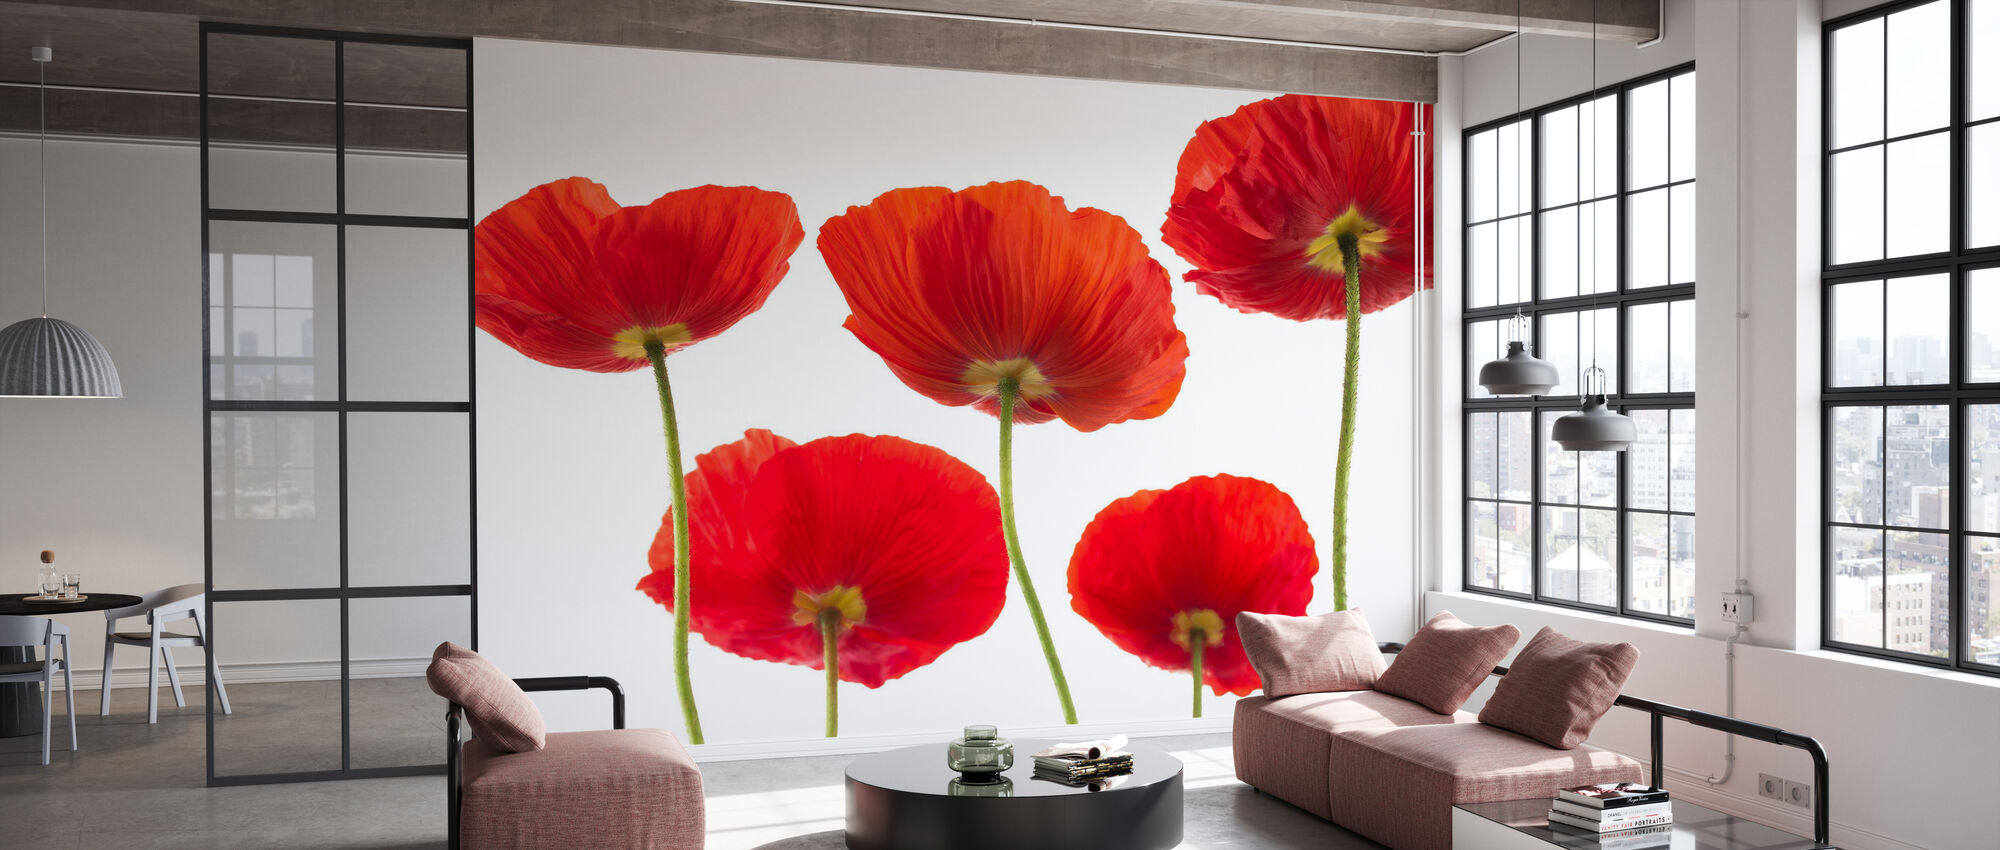 Poppies - Red - Wallpaper - Office